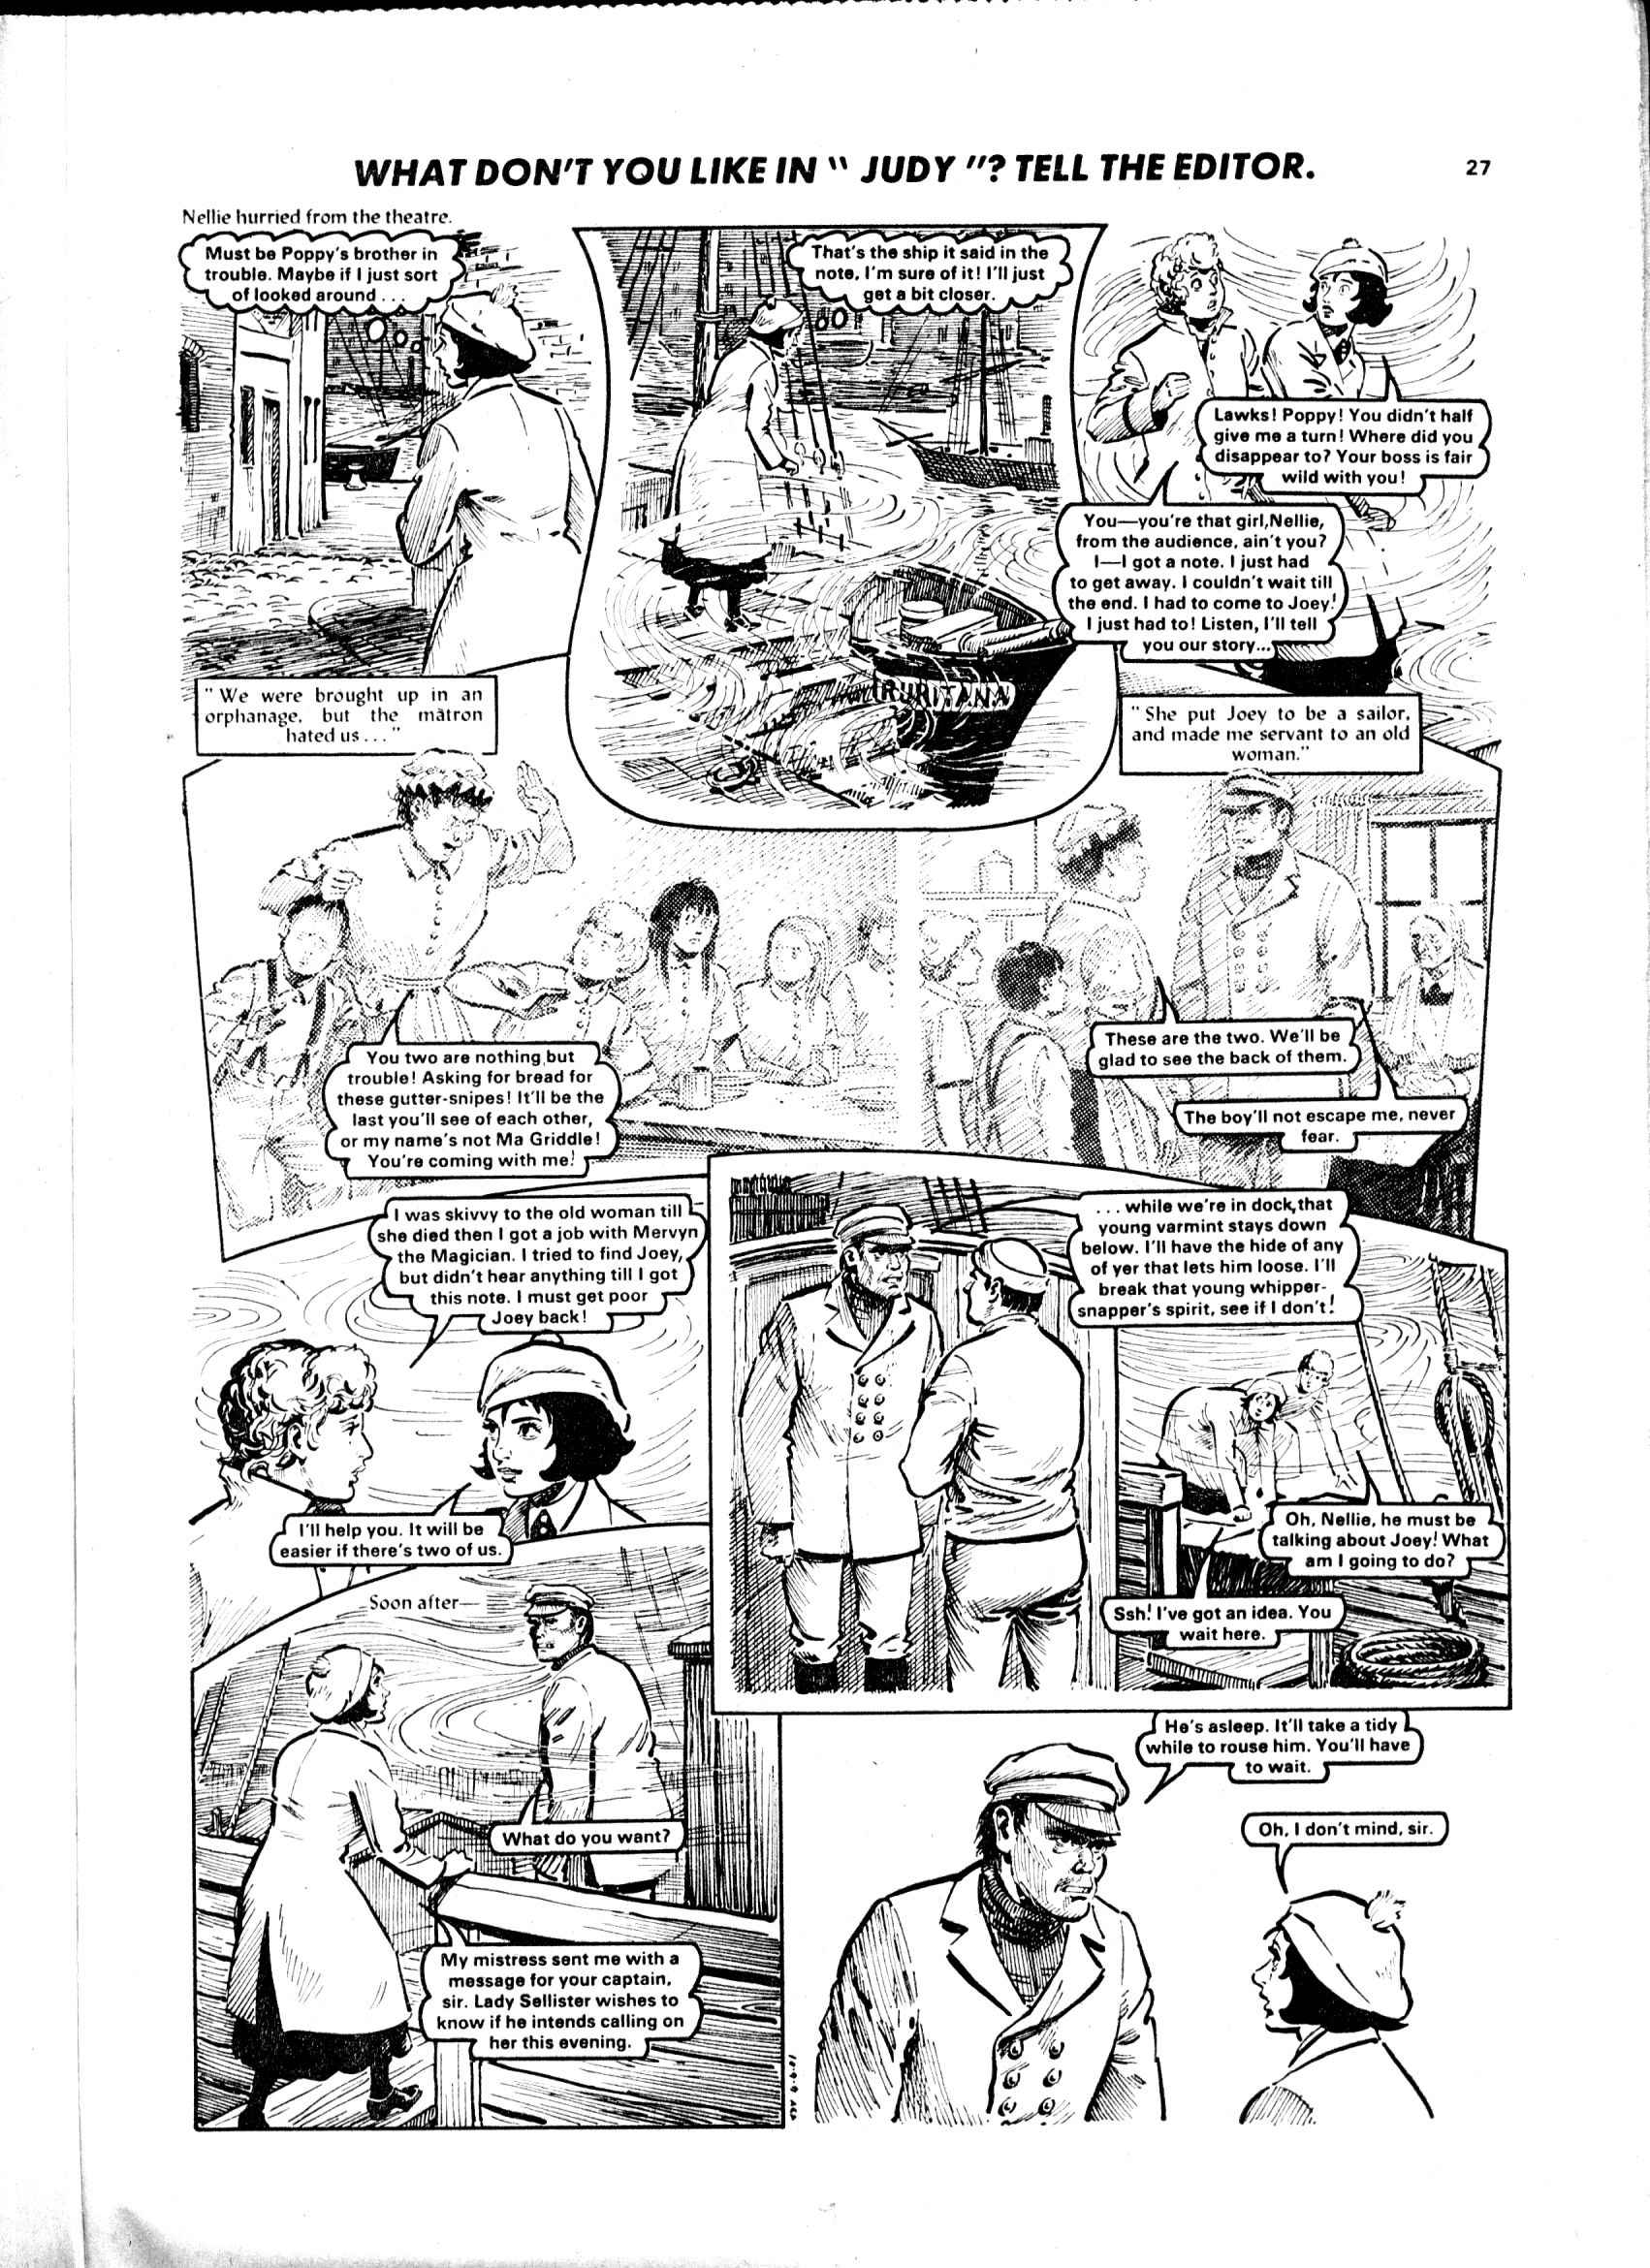 Read online Judy comic -  Issue #1108 - 27